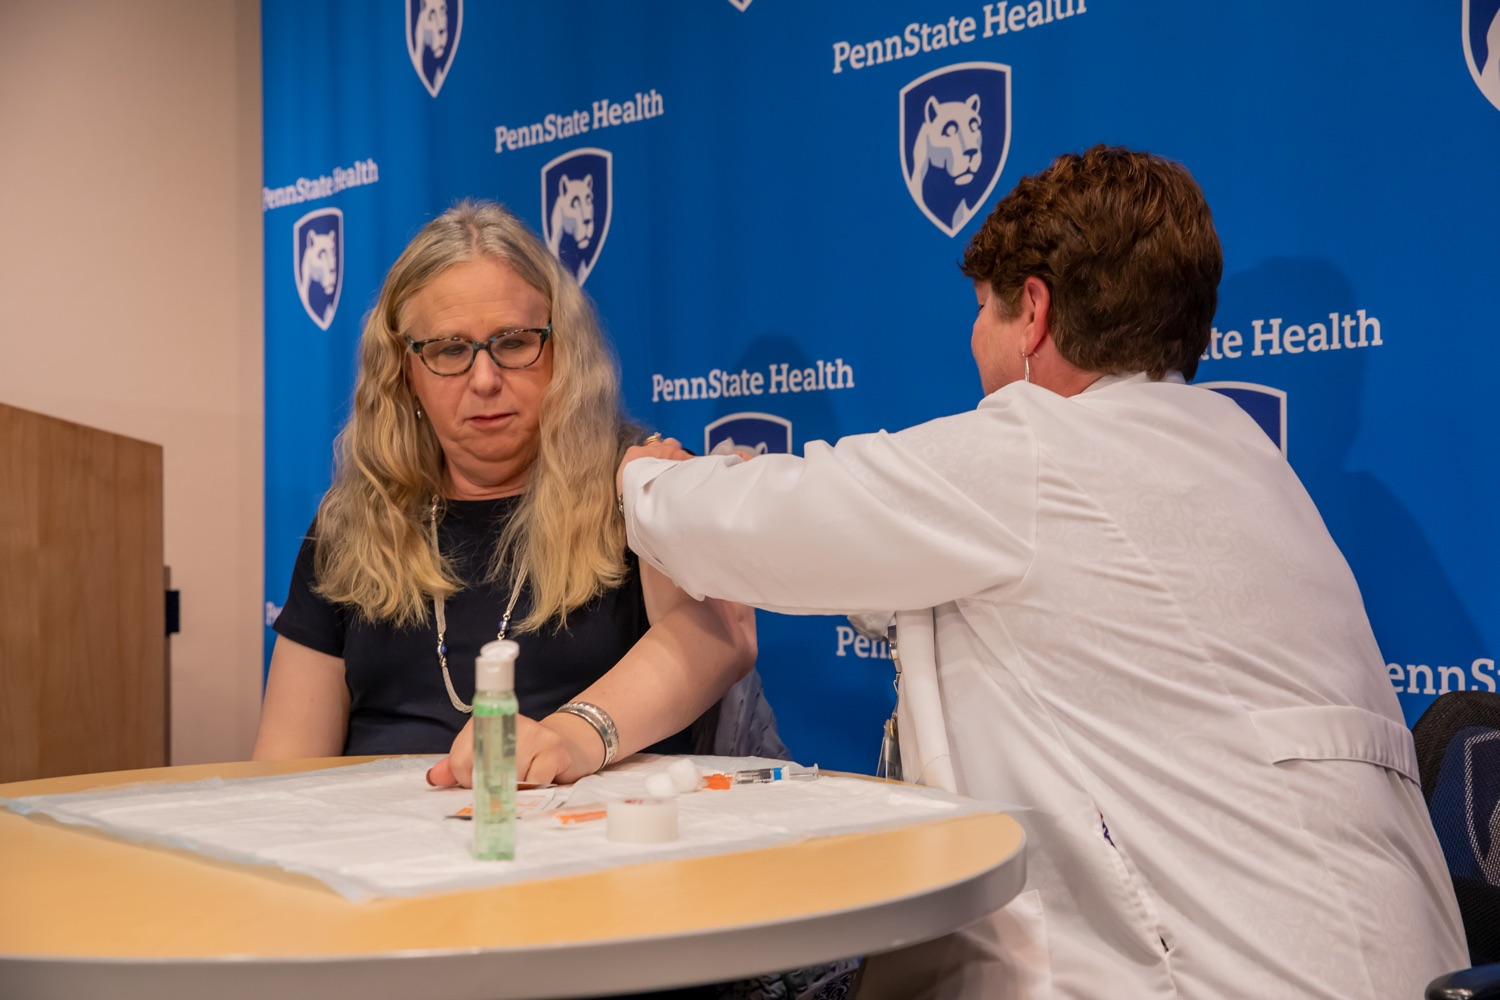 "<a href=""http://filesource.abacast.com/commonwealthofpa/photo/17471_DOH_FluSeason_AG_10.jpg"" target=""_blank"">⇣ Download Photo<br></a>Harrisburg, PA.  Secretary of Health Dr. Rachel Levine reciving her flu vaccine from Penn State Health RN Lori Bechtel at today's event at the Penn State Health Milton S. Hershey Medical Center.  The Department of Health reminds residents that it is time to get their flu vaccine, as flu season officially starts this month and runs until May.   October 8, 2019."